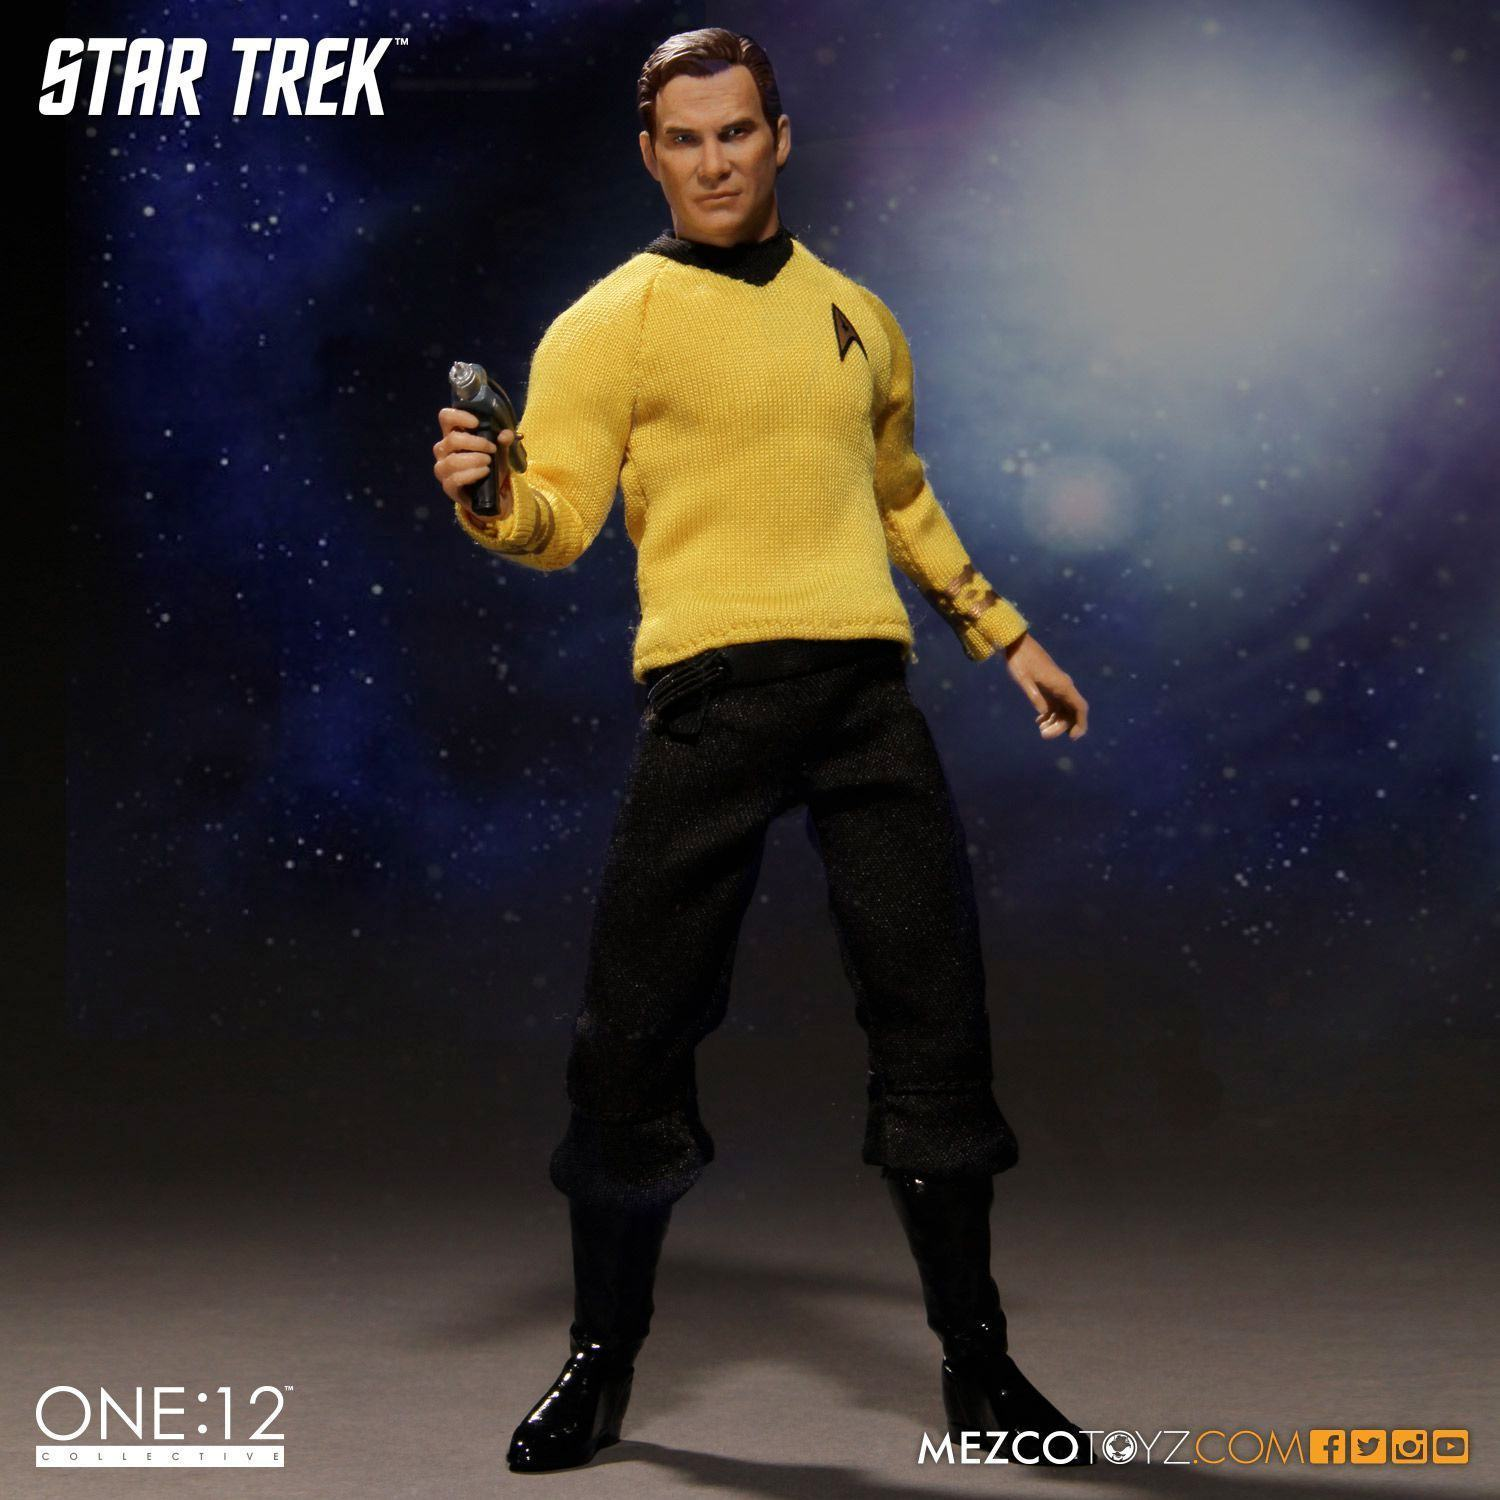 Kirk-Star-Trek-One-12-Collective-Action-Figure-03